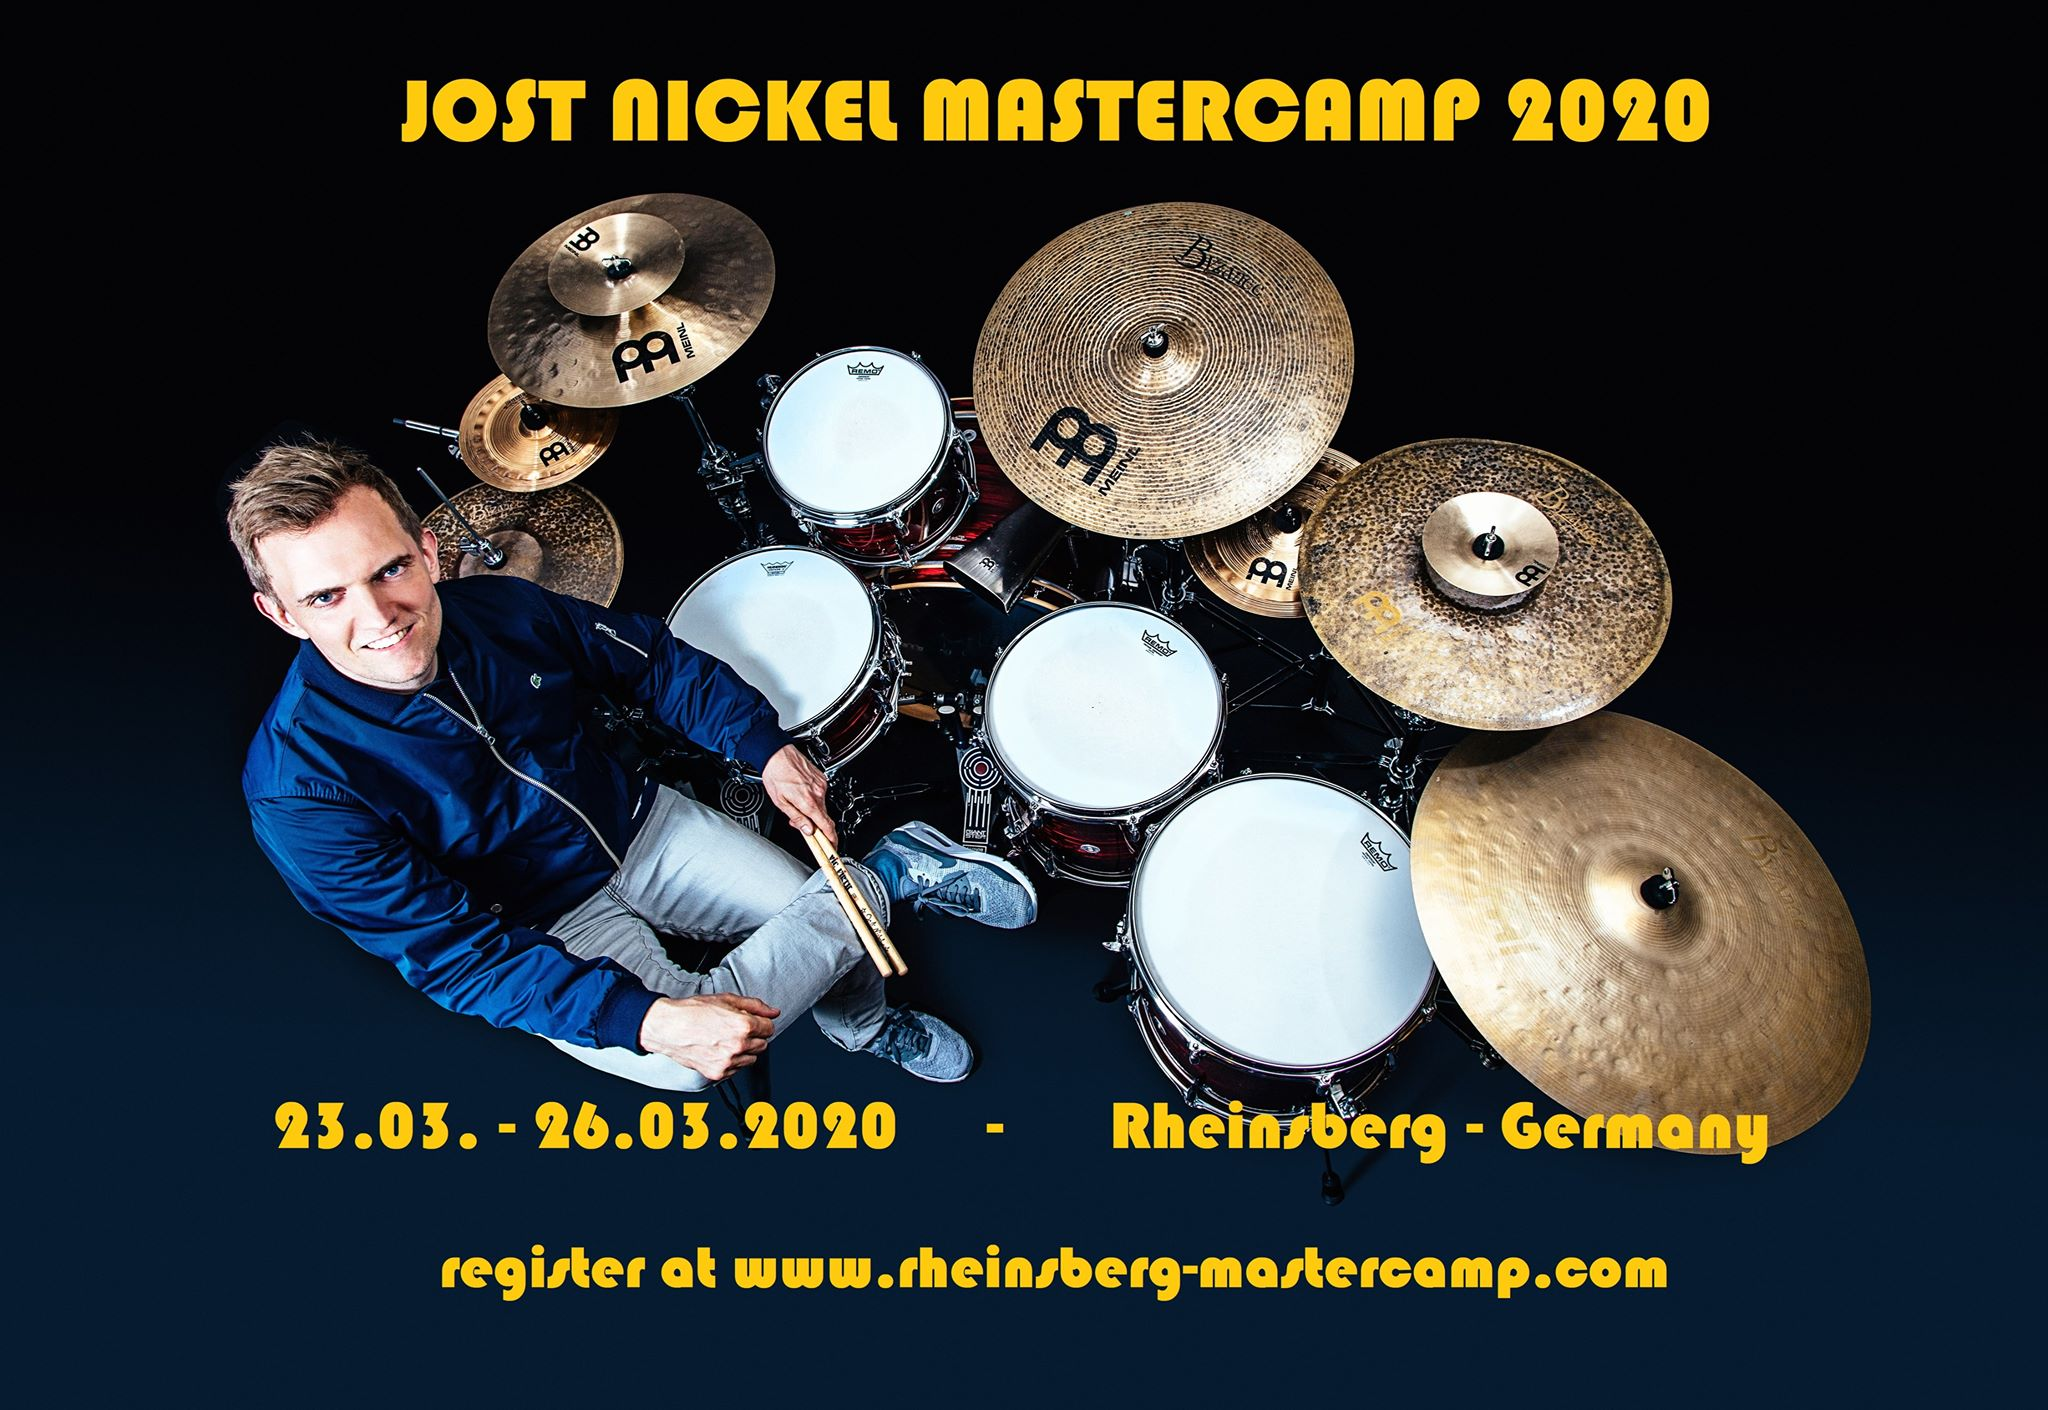 Jost Nickel - 23.03. - 26.03.2020 #Rheinsberg #Mastercamp